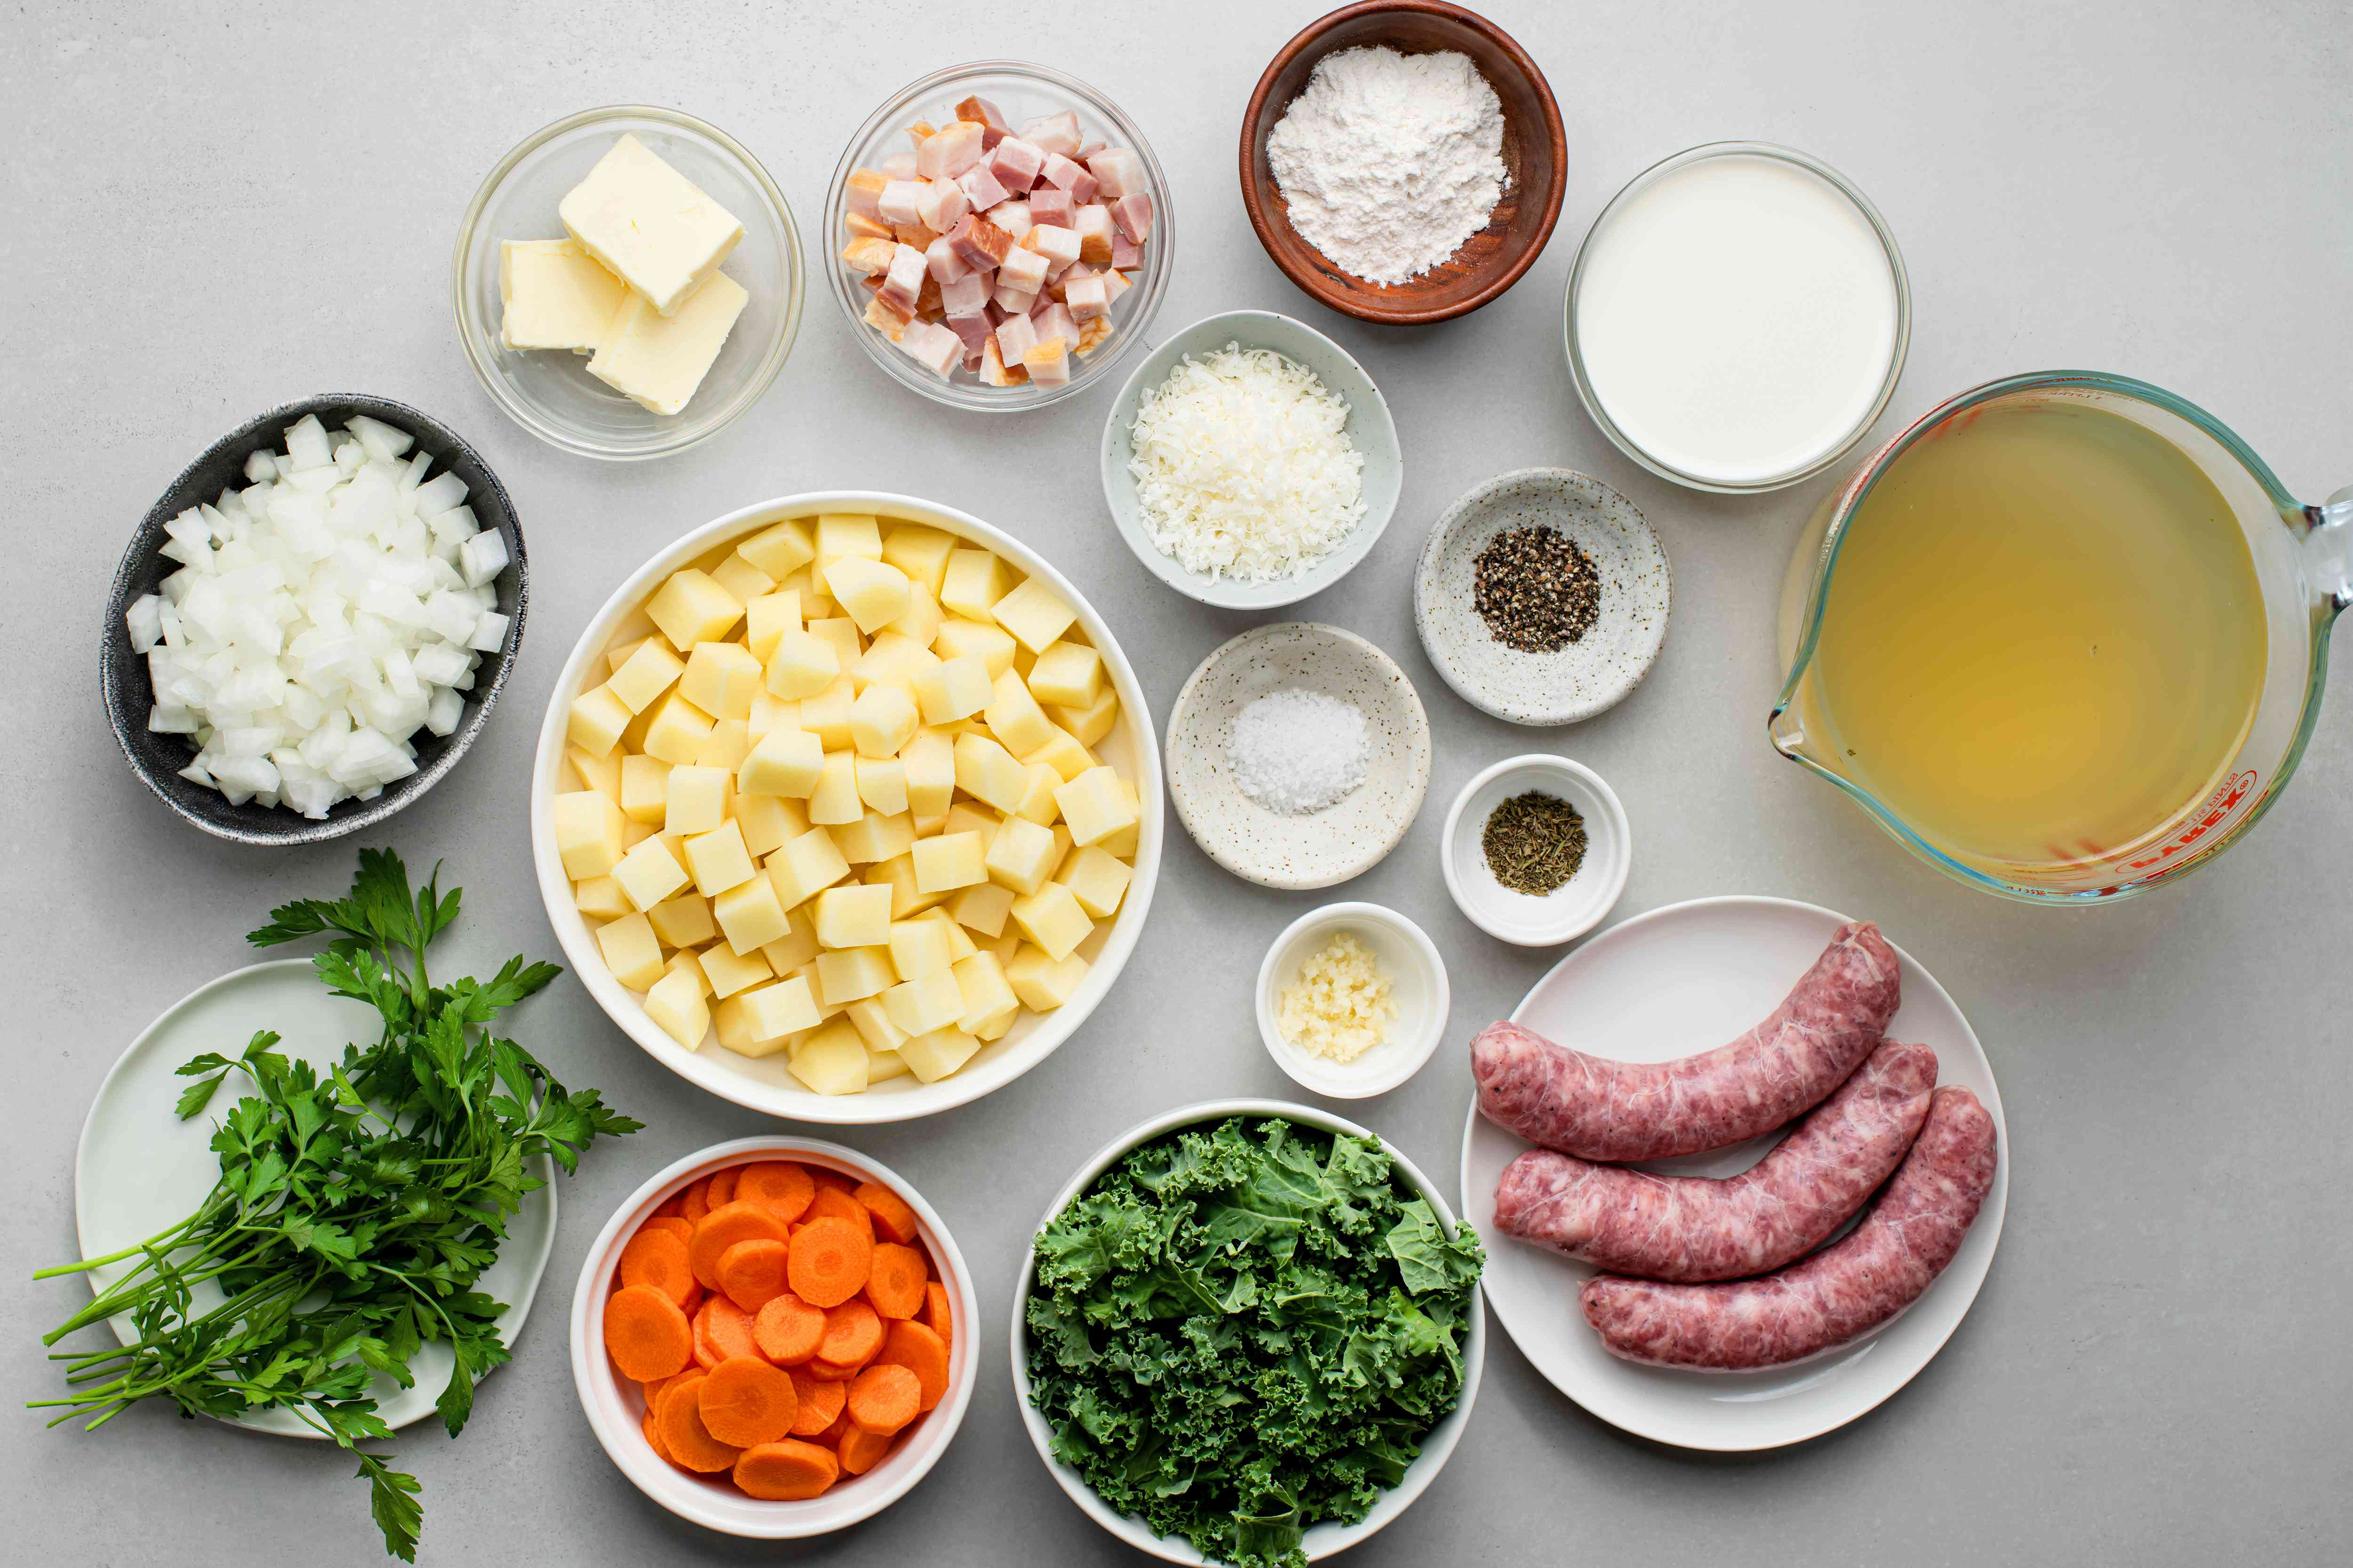 Sausage and Potato Soup With Kale ingredients